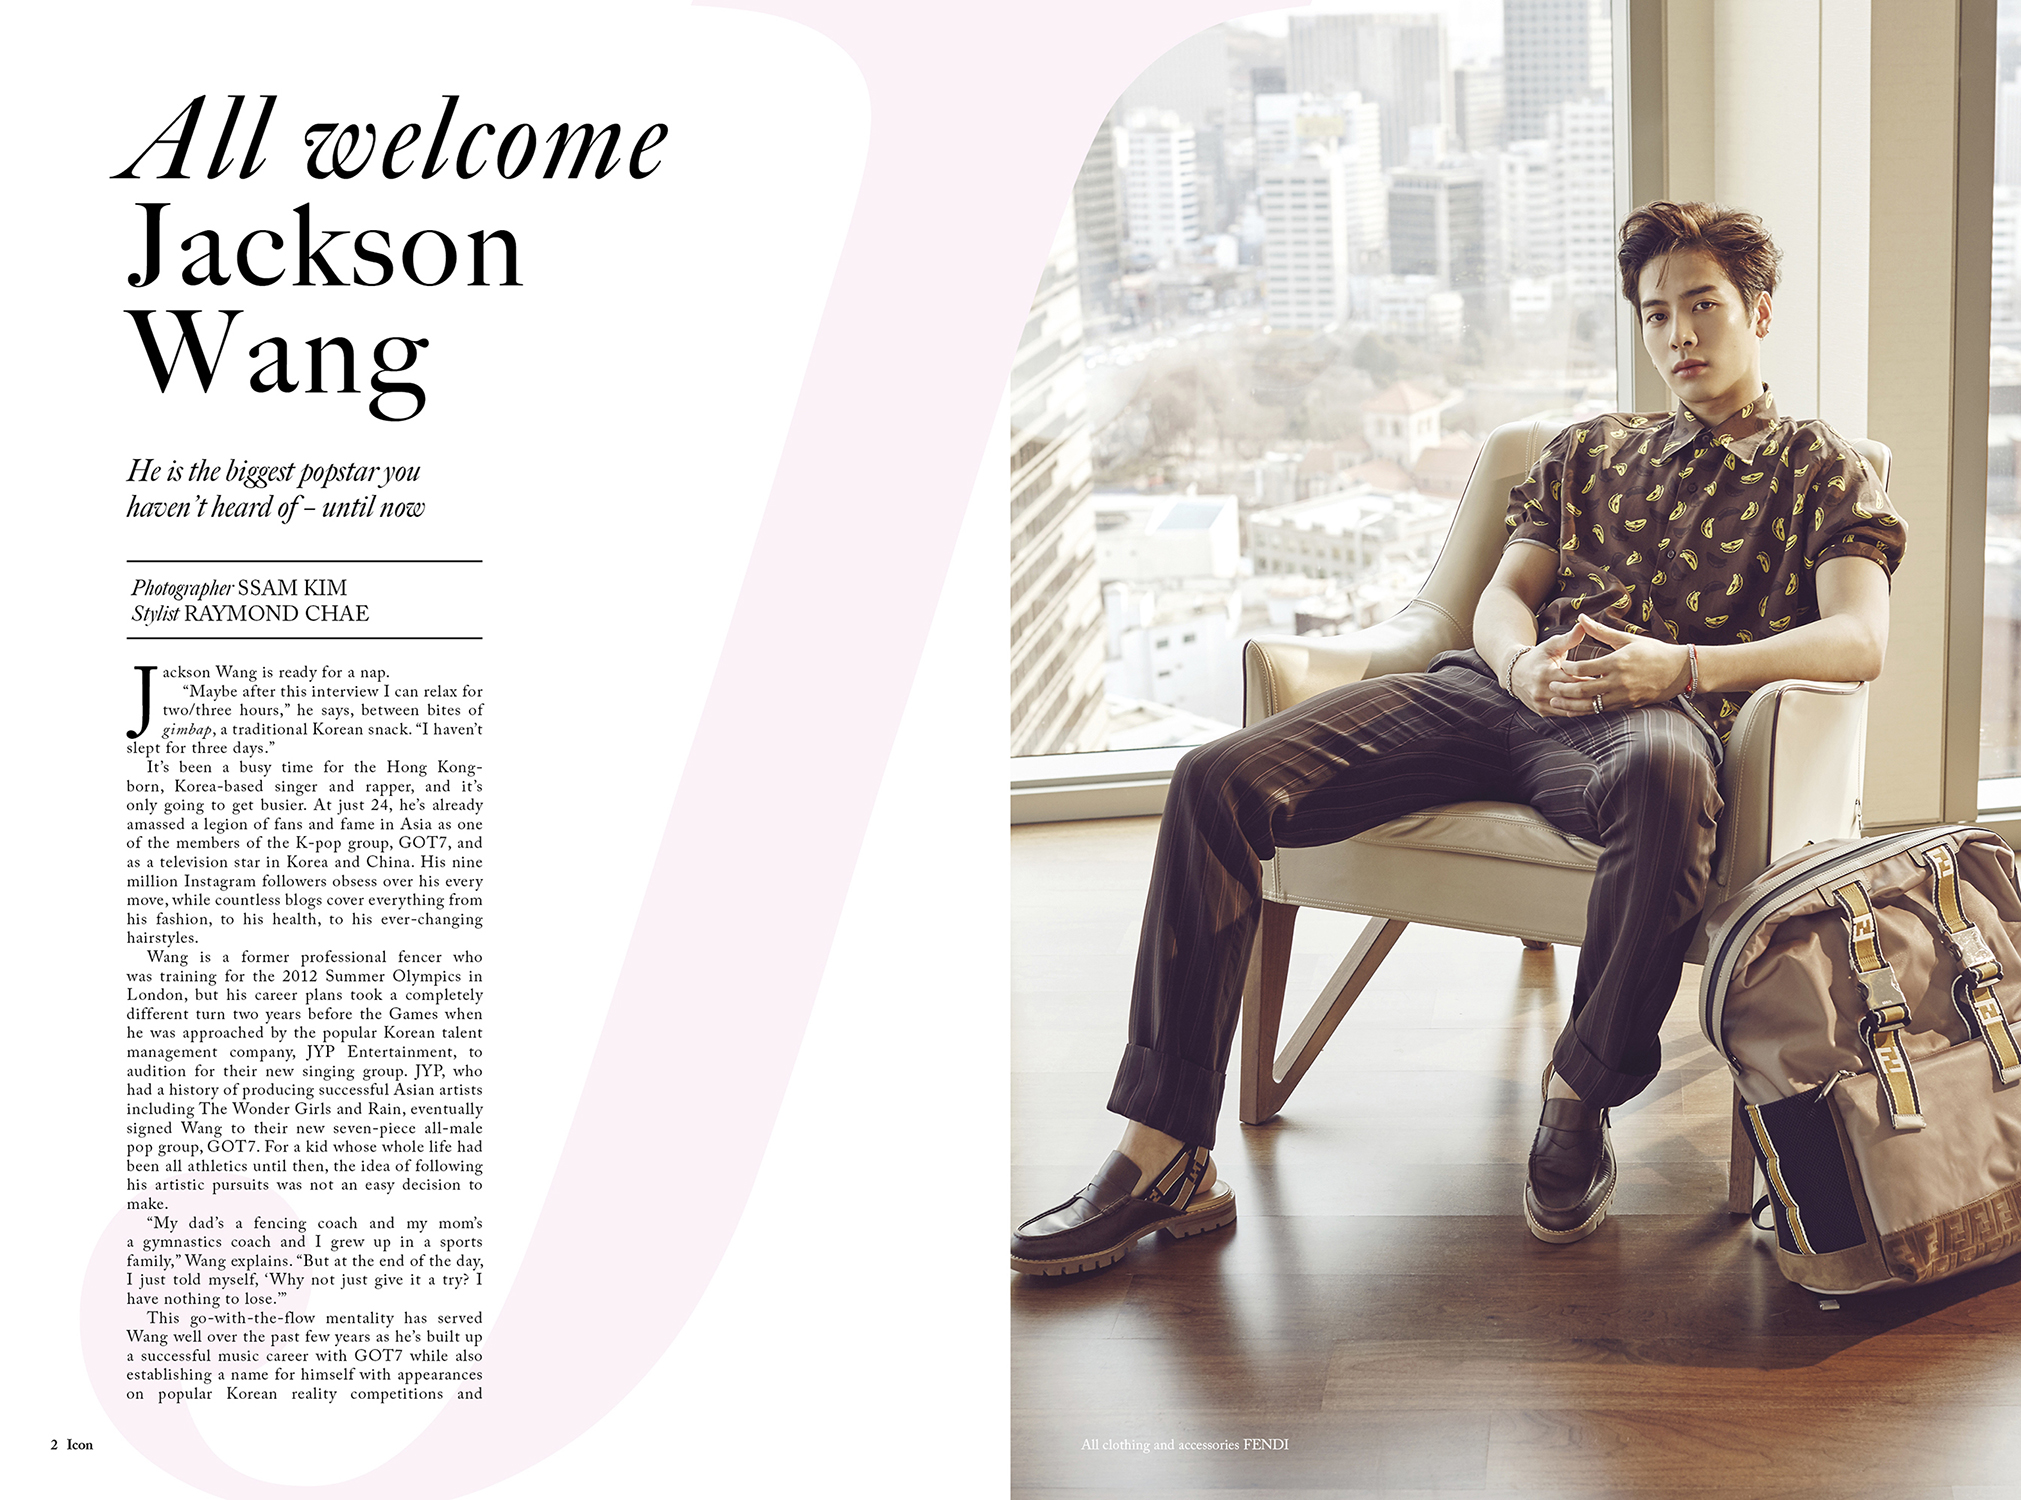 Glass_Issue 33_Men_Jackson_2